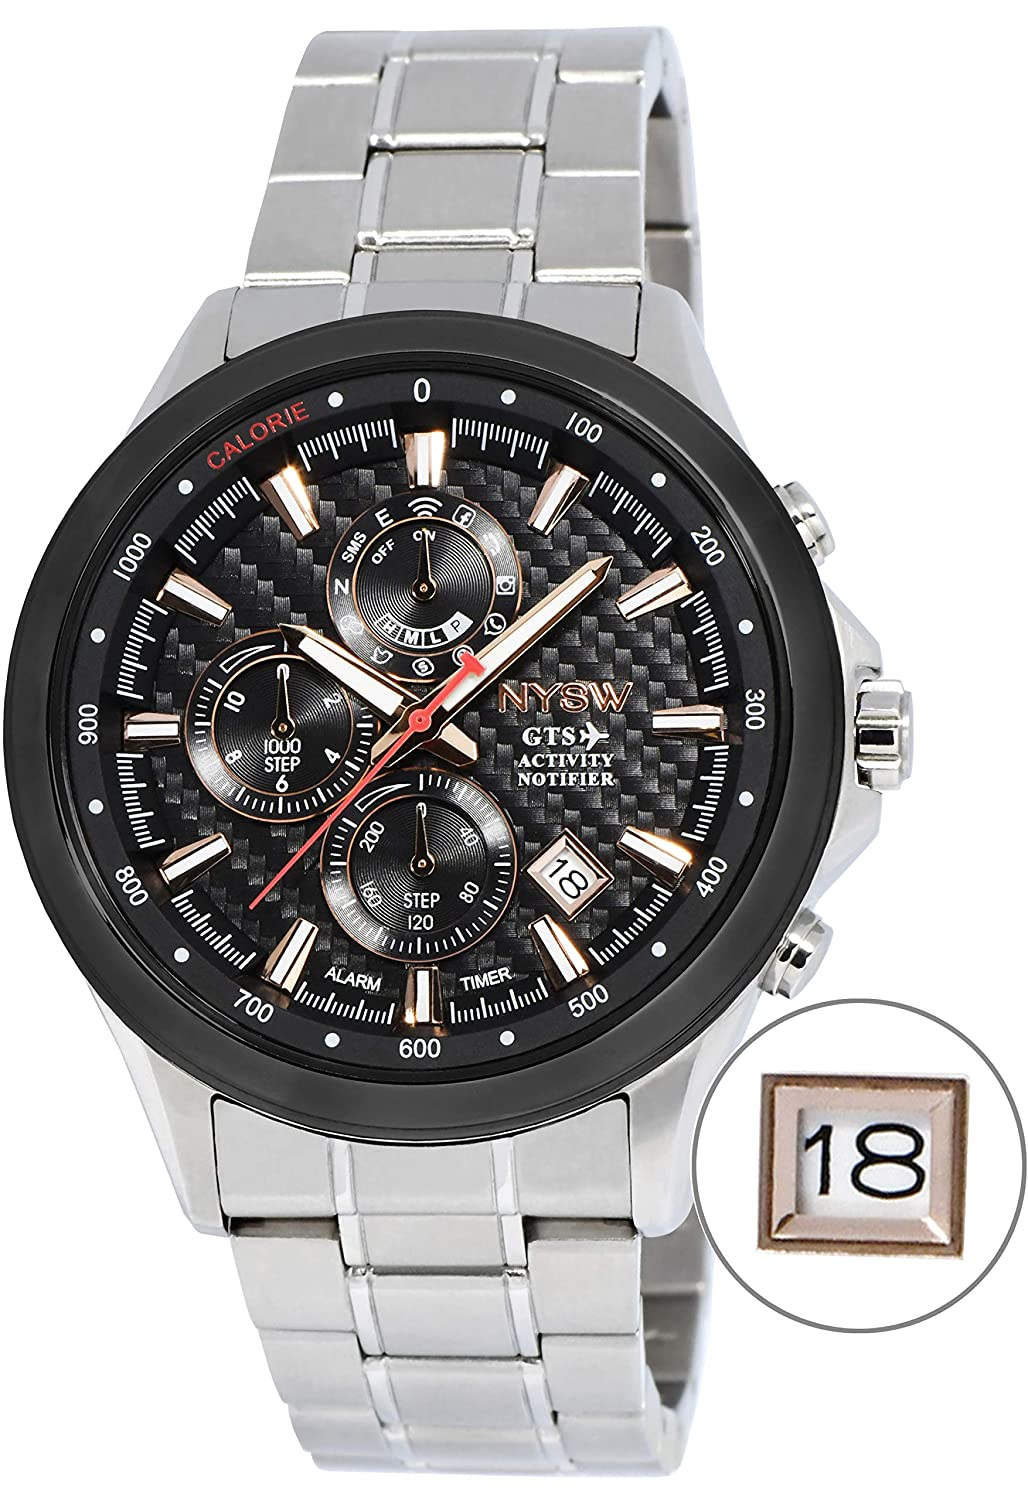 NYSW - Worlds 1st Hybrid Smartwatch for Men with Perpetual Calendar. This Luxury Fitness Tracker with Direct Steps Reading on Dial Advanced Discreet ...